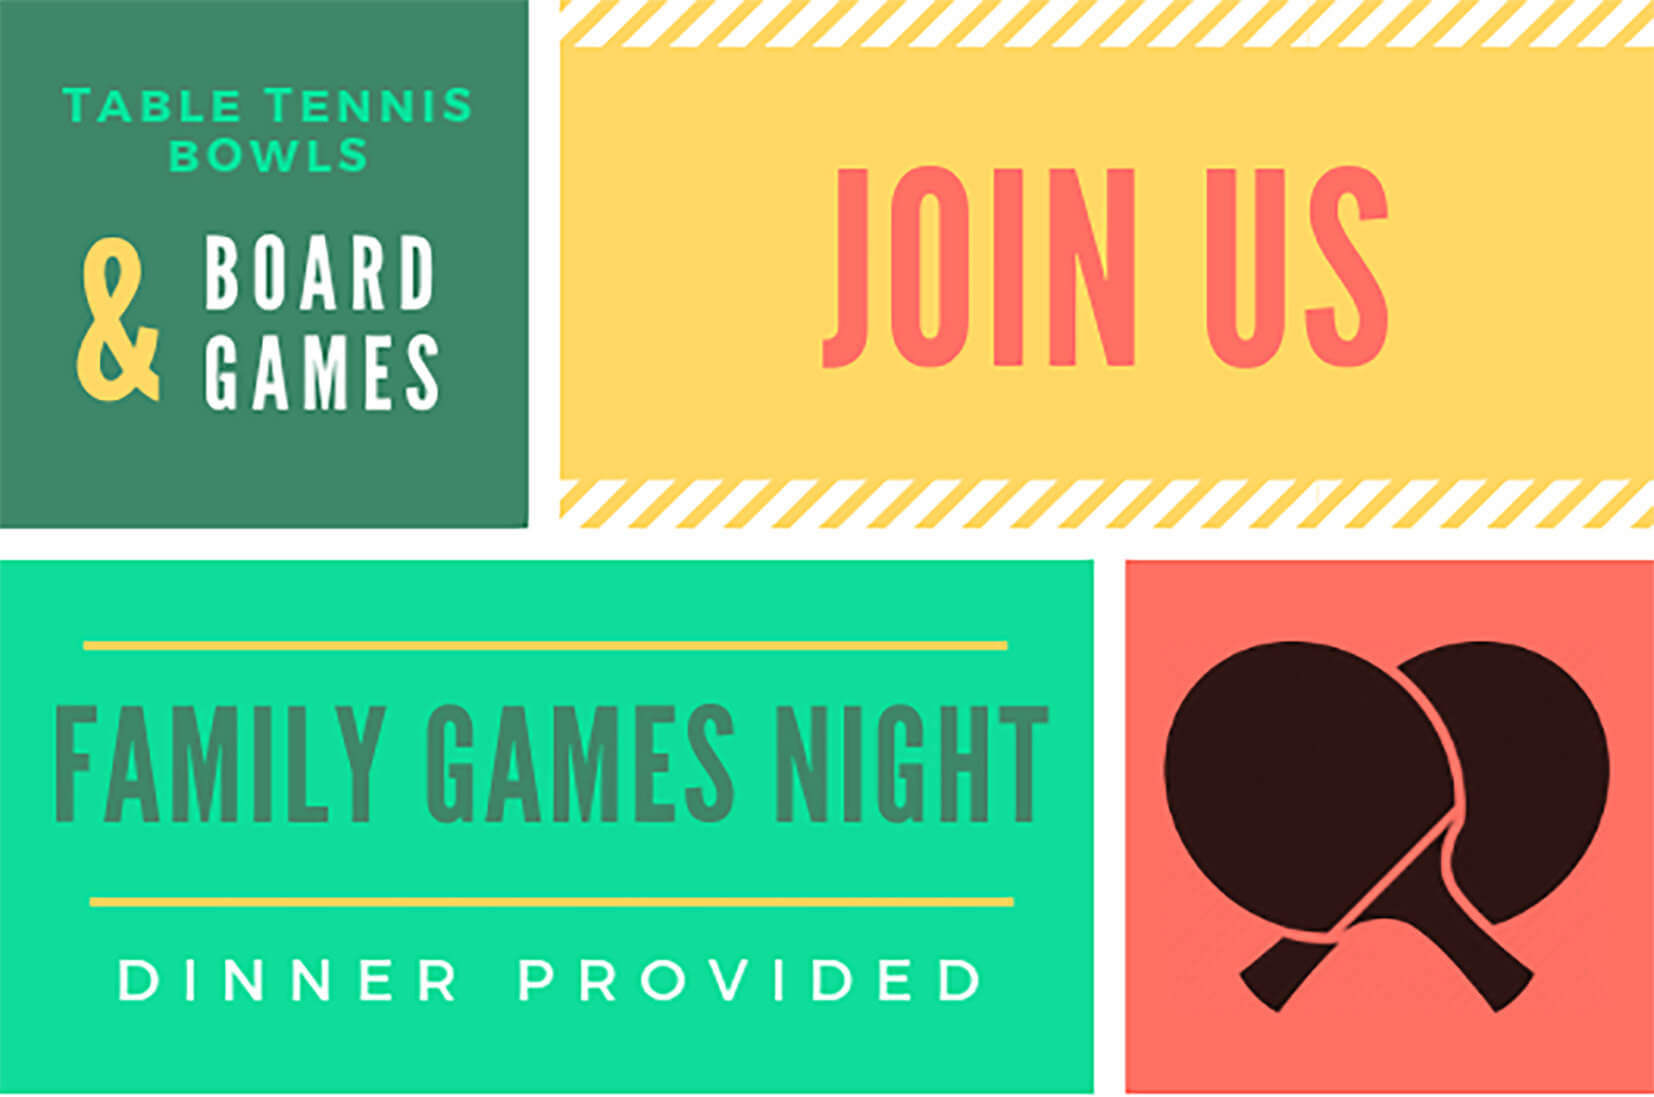 Image of Family Games night flyer